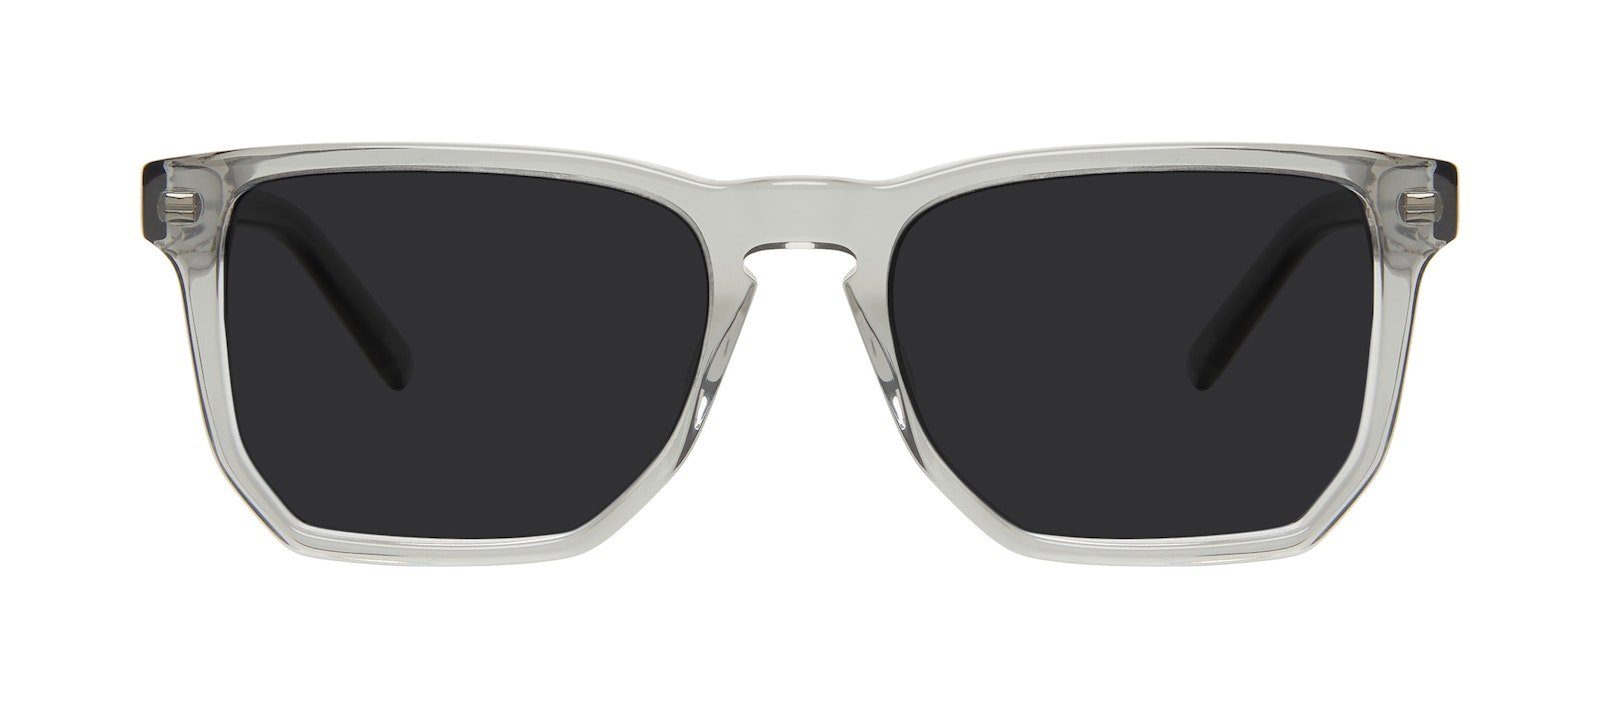 Affordable Fashion Glasses Square Sunglasses Men Andy L Storm Front